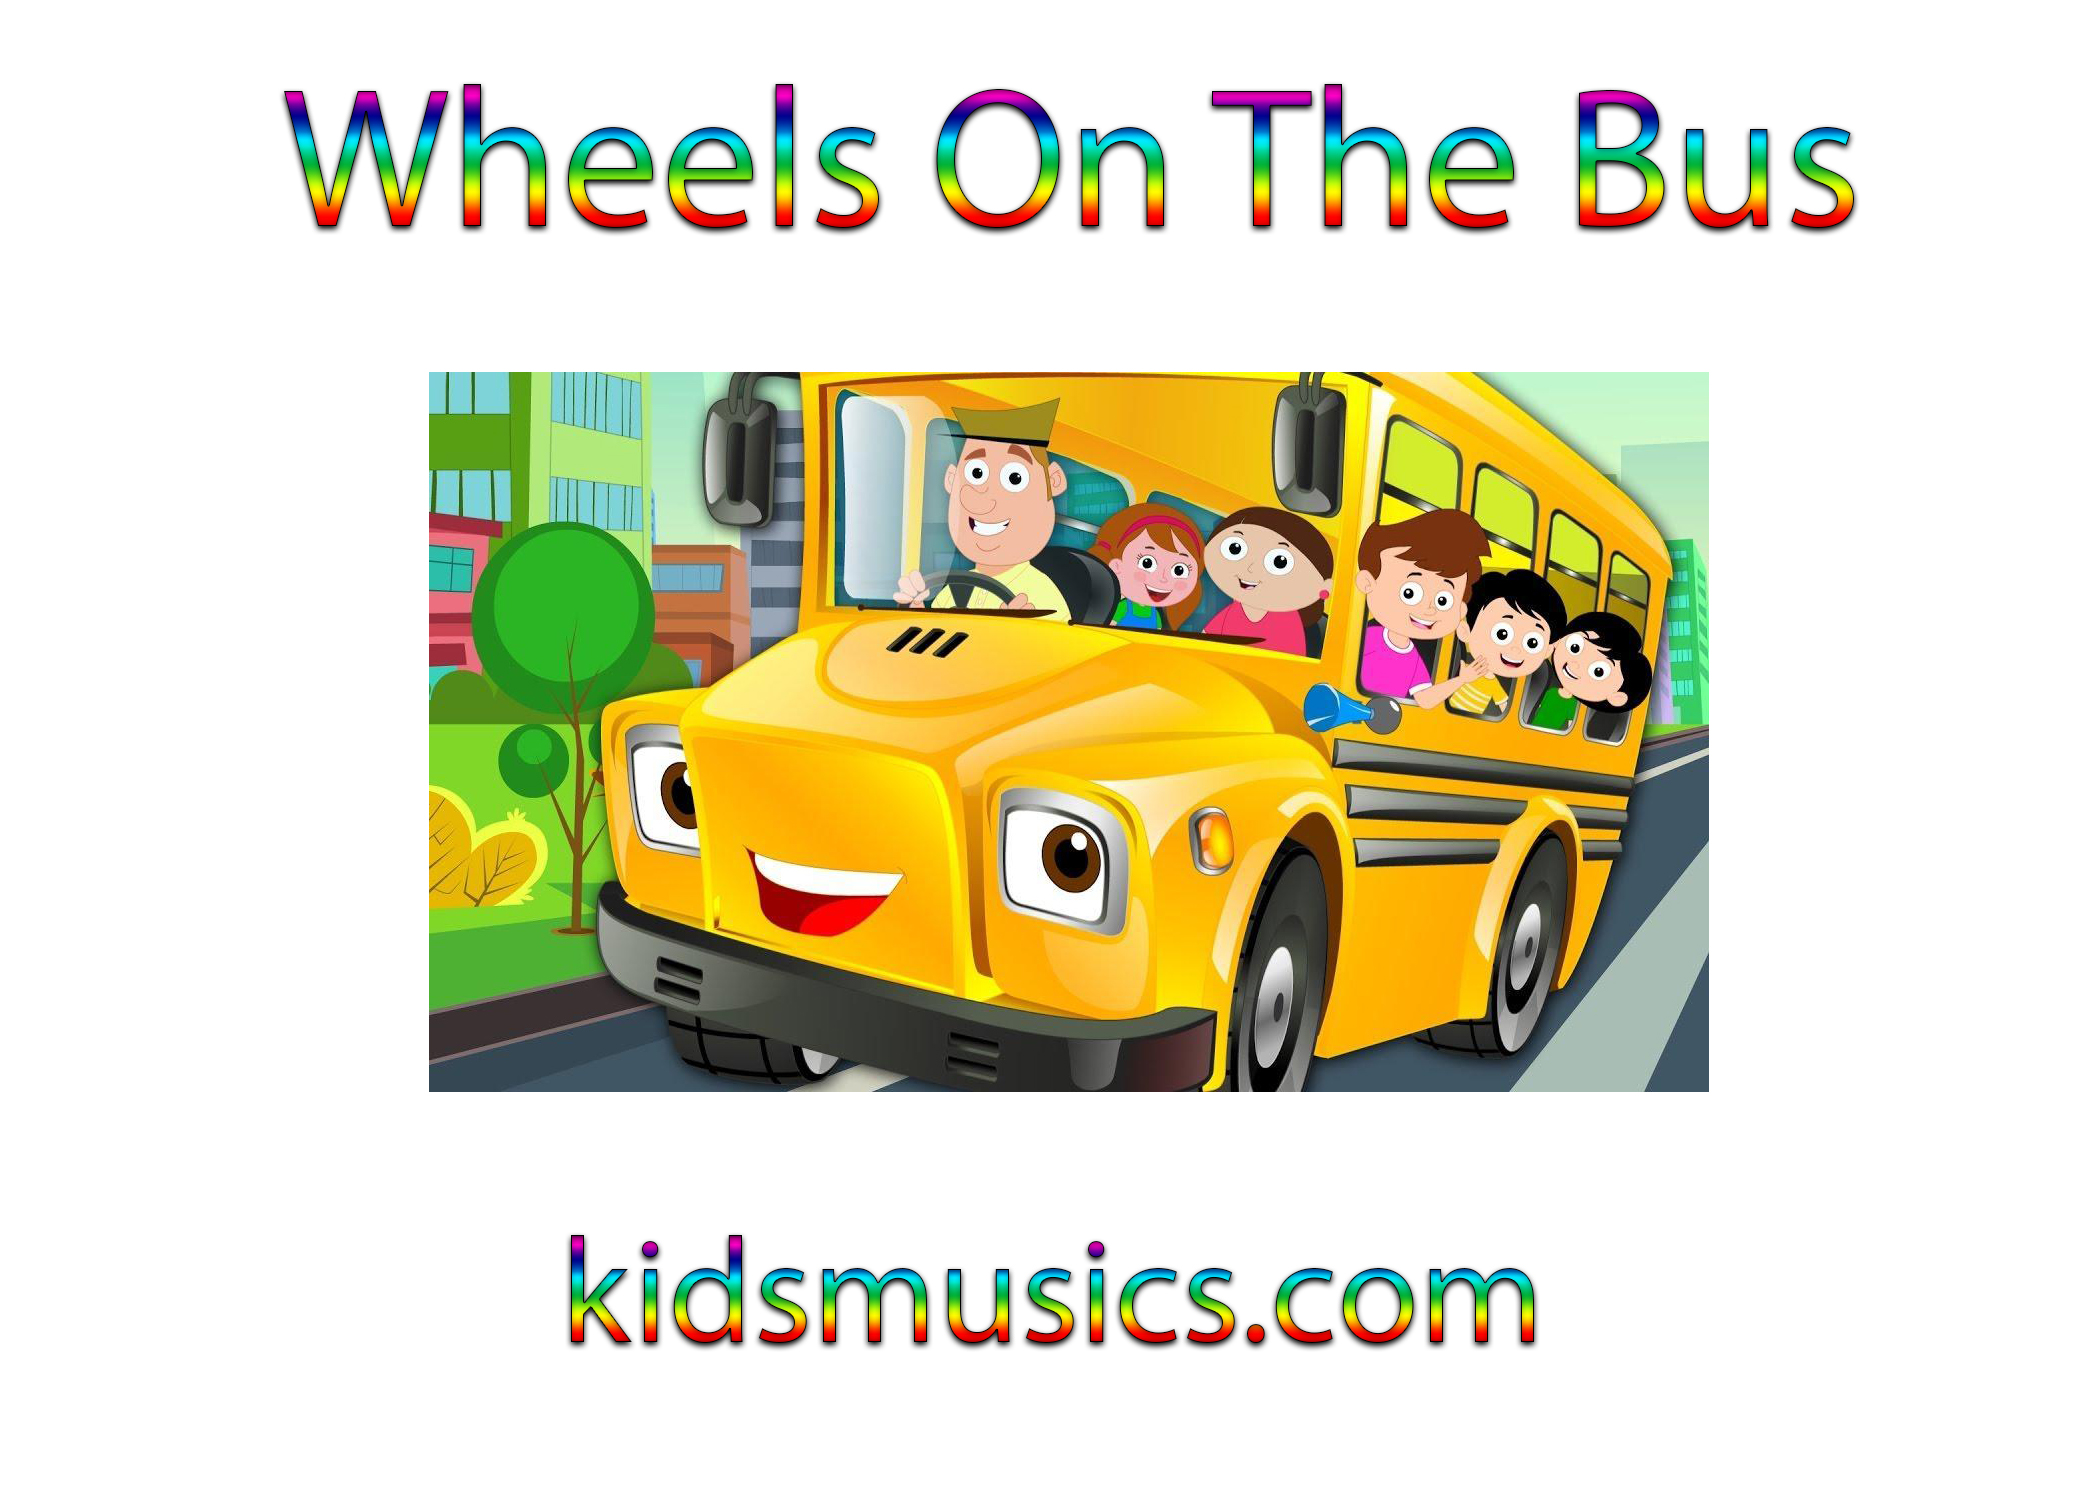 Kidsmusics Download Wheels On The Bus Free Mp3 320kbps Zip Archive